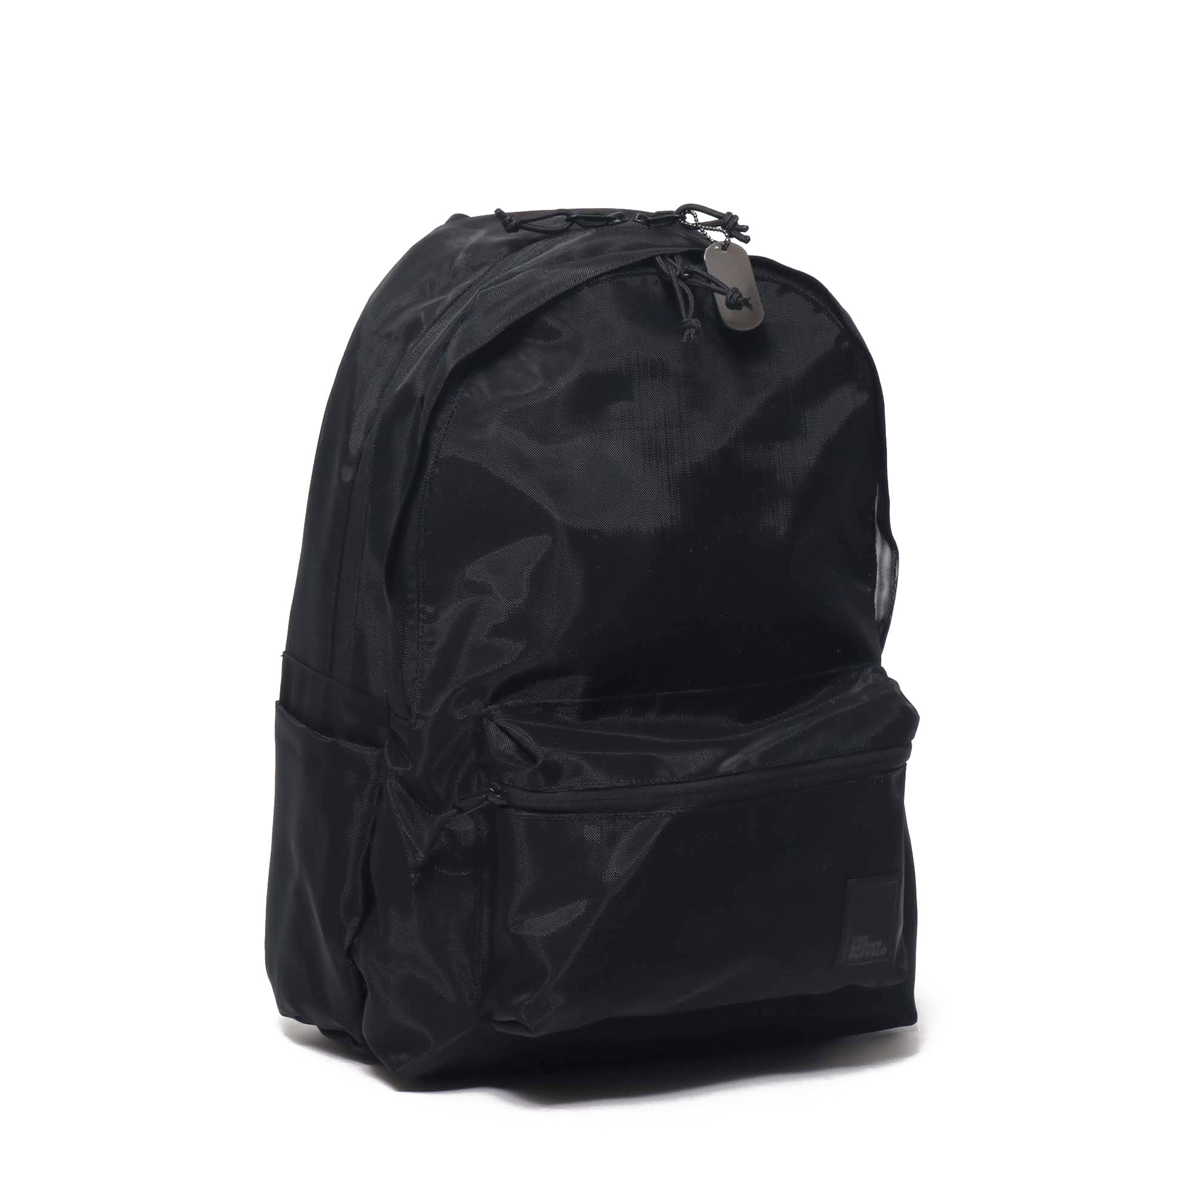 THE BROWN BUFFALO STANDARD ISSUE BACKPACK(BLACK)(ザ ブラウン バッファロー スタンダードイシュ―バックパック)【メンズ】【レディース】【バックパック】【19FA-I】